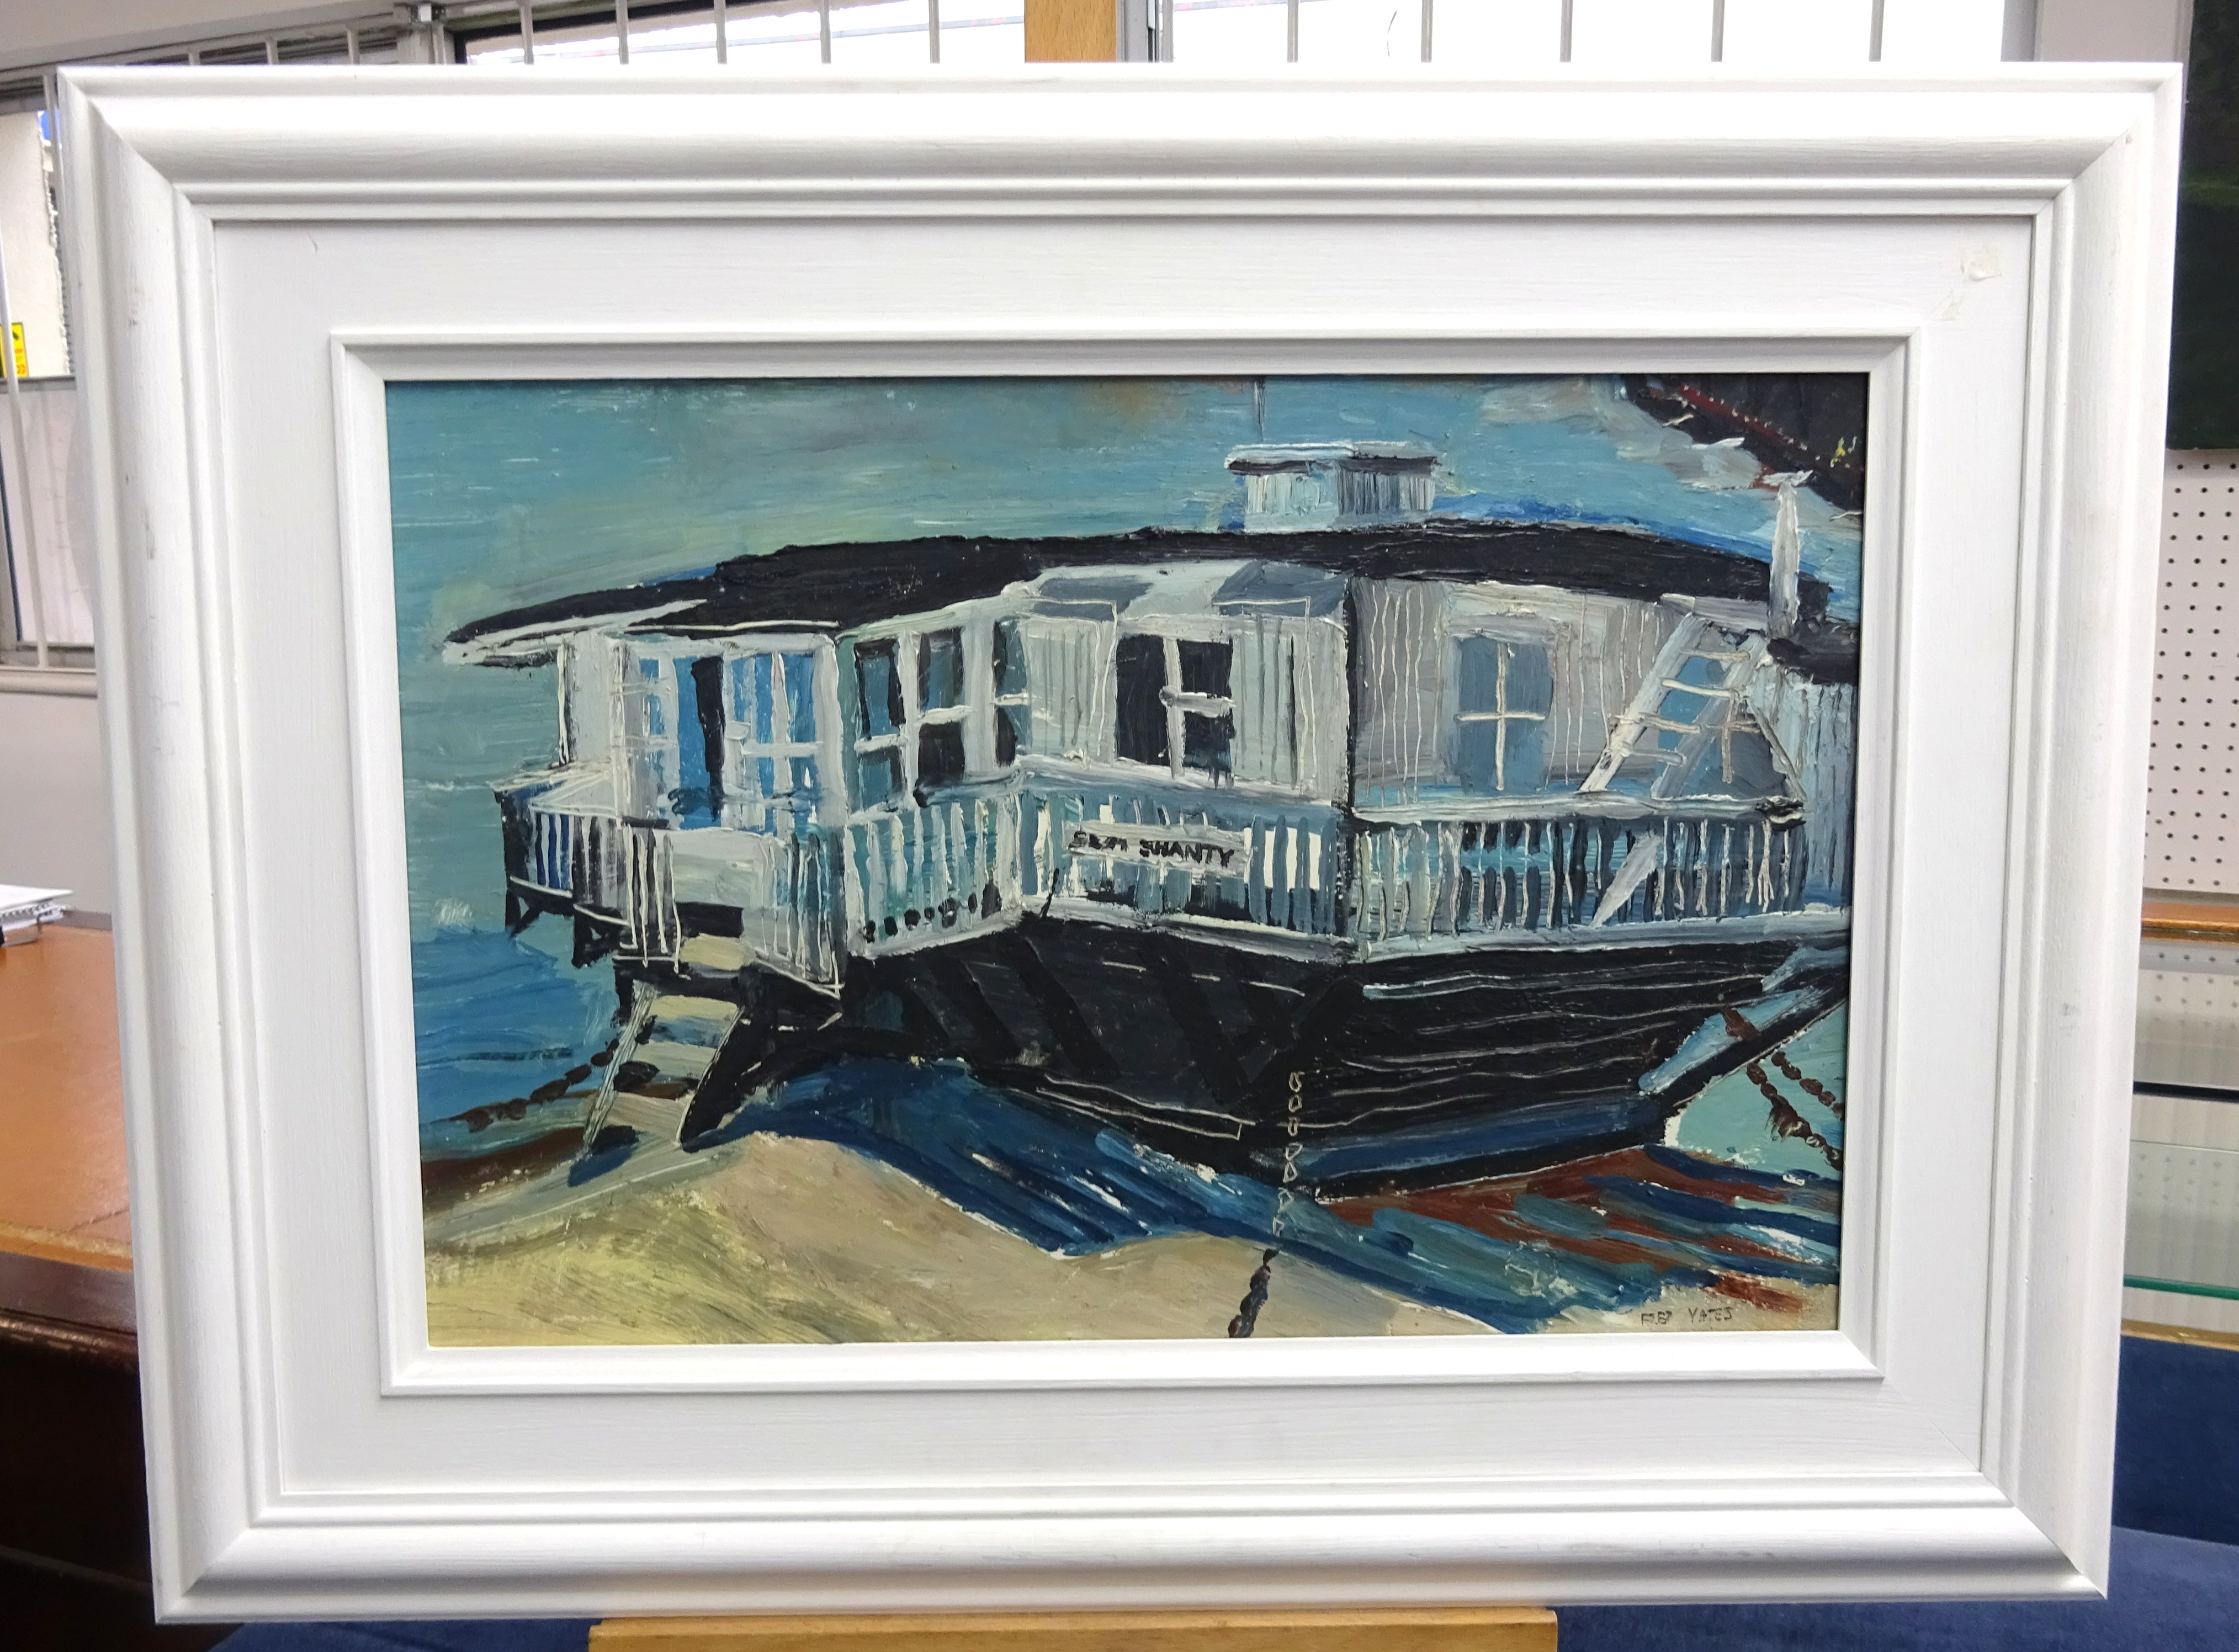 Lot 012 - Fred Yates (1922-2008), oil on board 'Sea Shanty', signed, label verso 'Sea Shanty, Sandbanks', 30cm